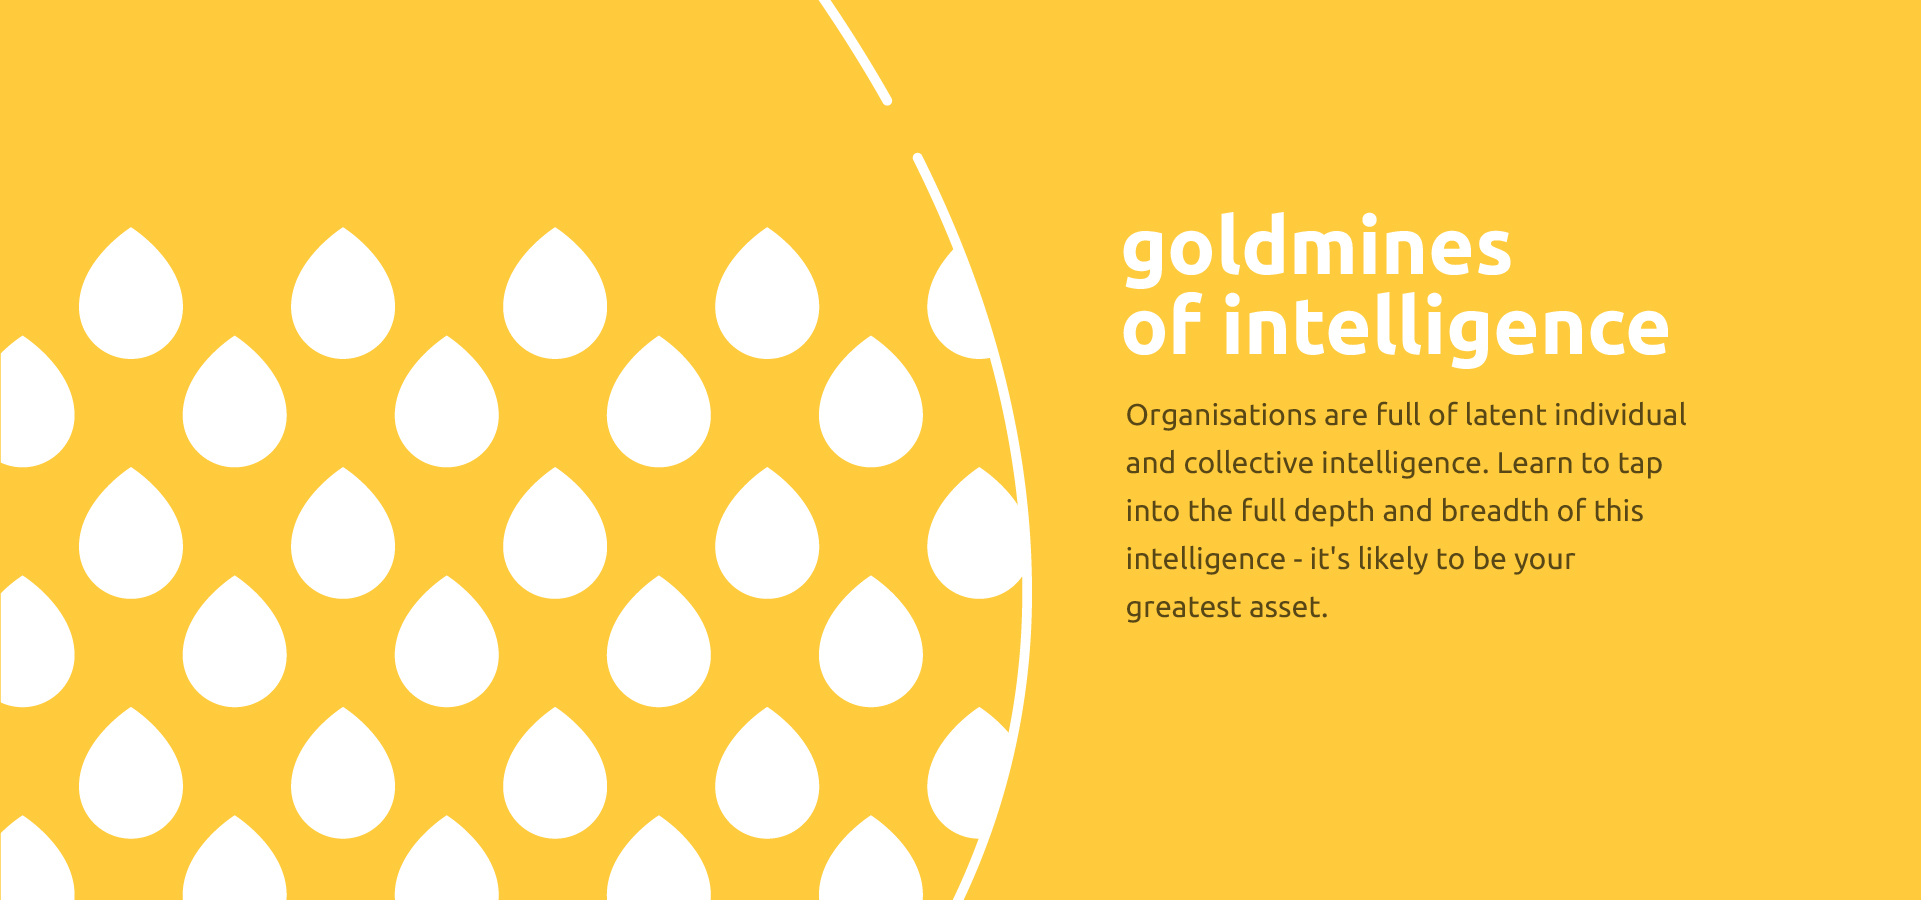 Thoughtsmiths - Goldmines of Intelligence